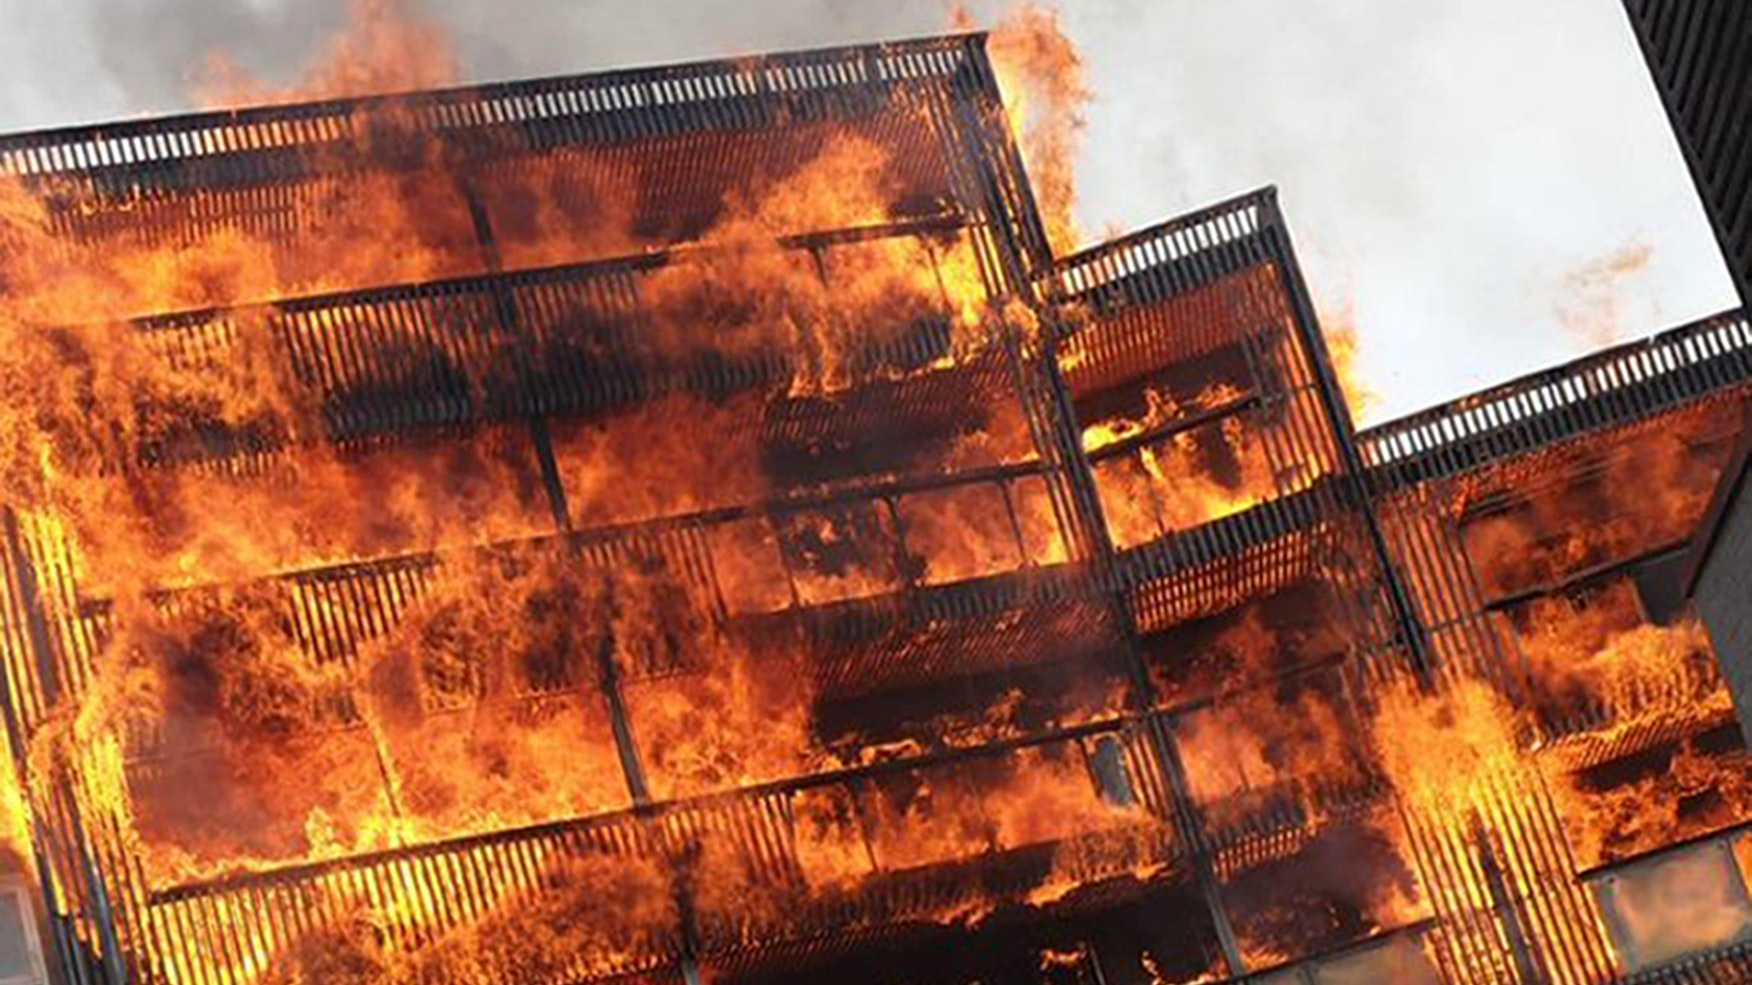 Huge blaze breaks out at block of flats in London